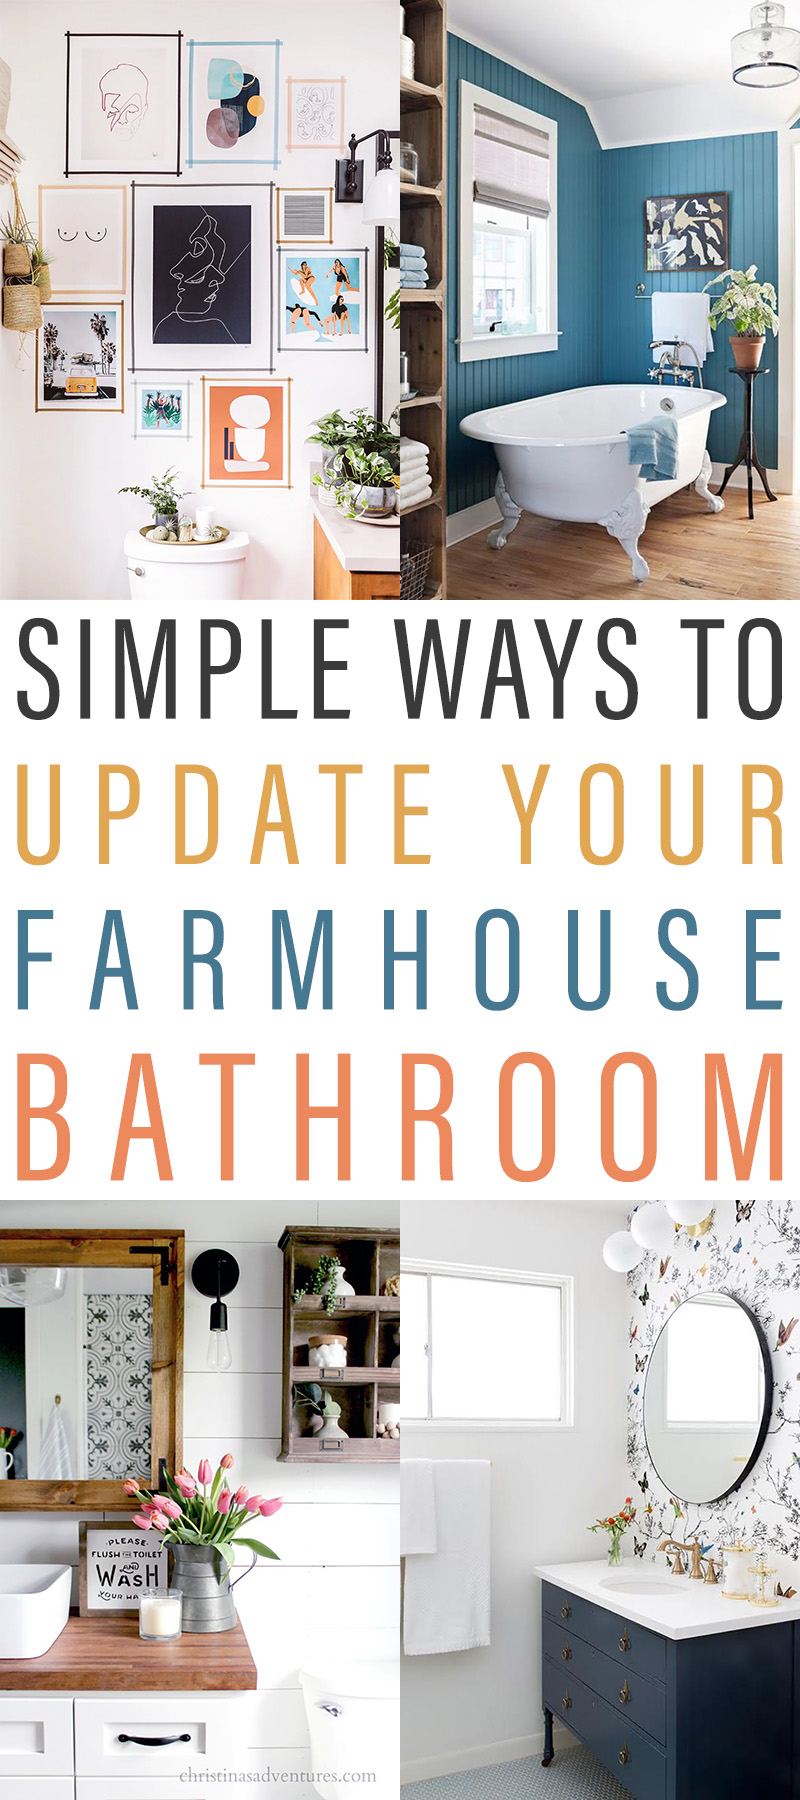 Simple Ways to Update Your Farmhouse Bathroom